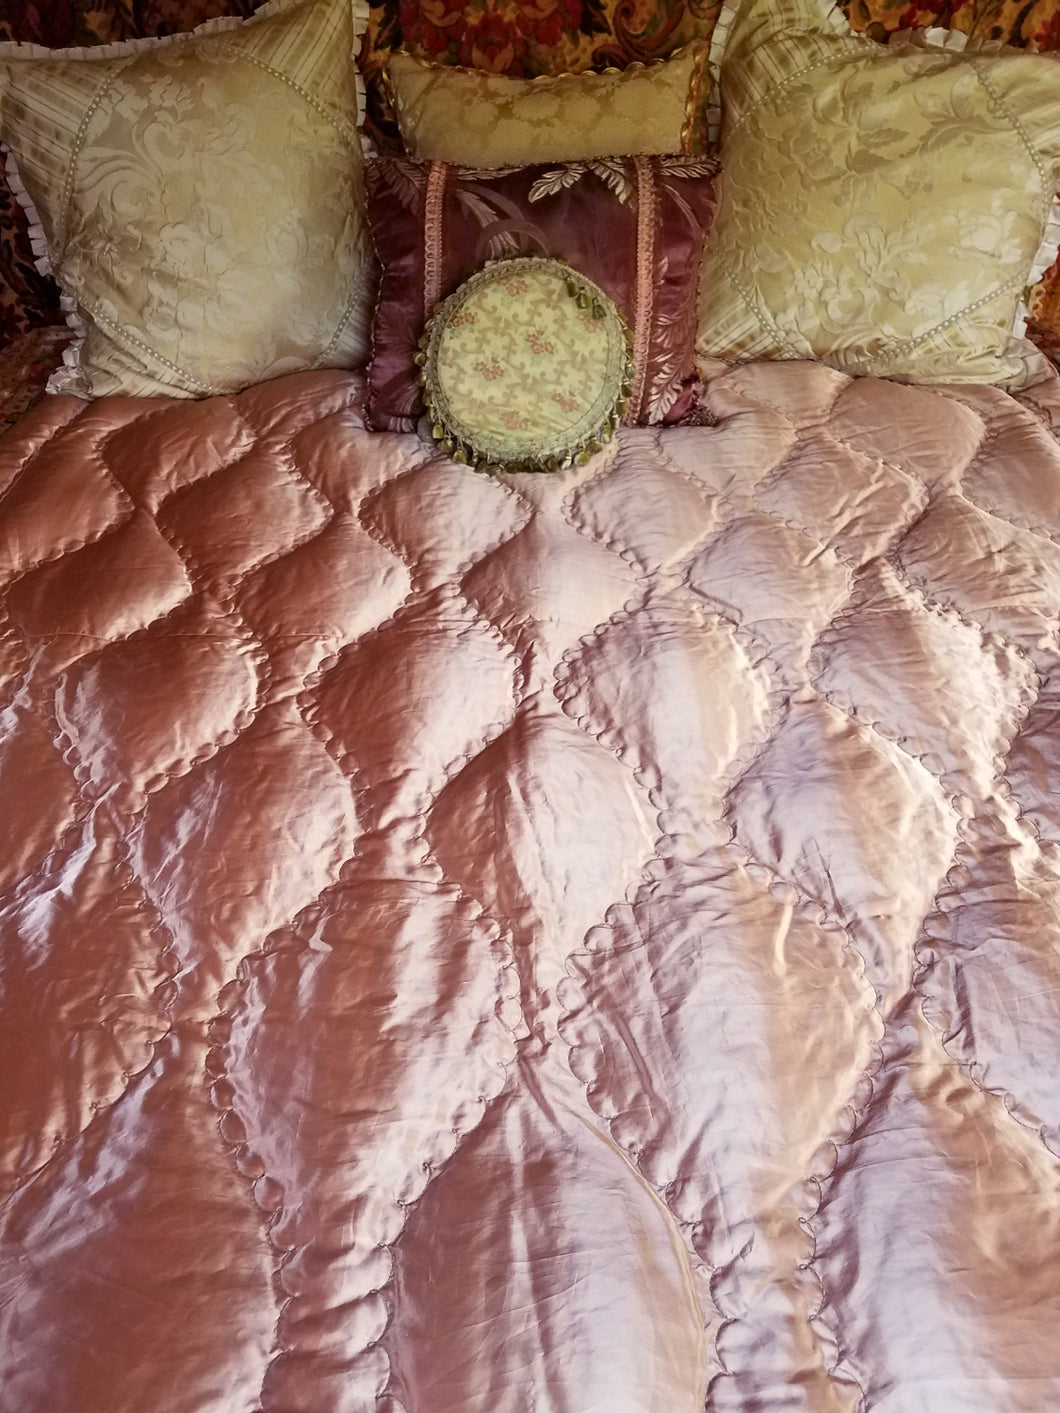 Vintage Satin Quilt or Throw, Down-Filled, Reversible, 1920s - 1940s, Excellent Condition 66